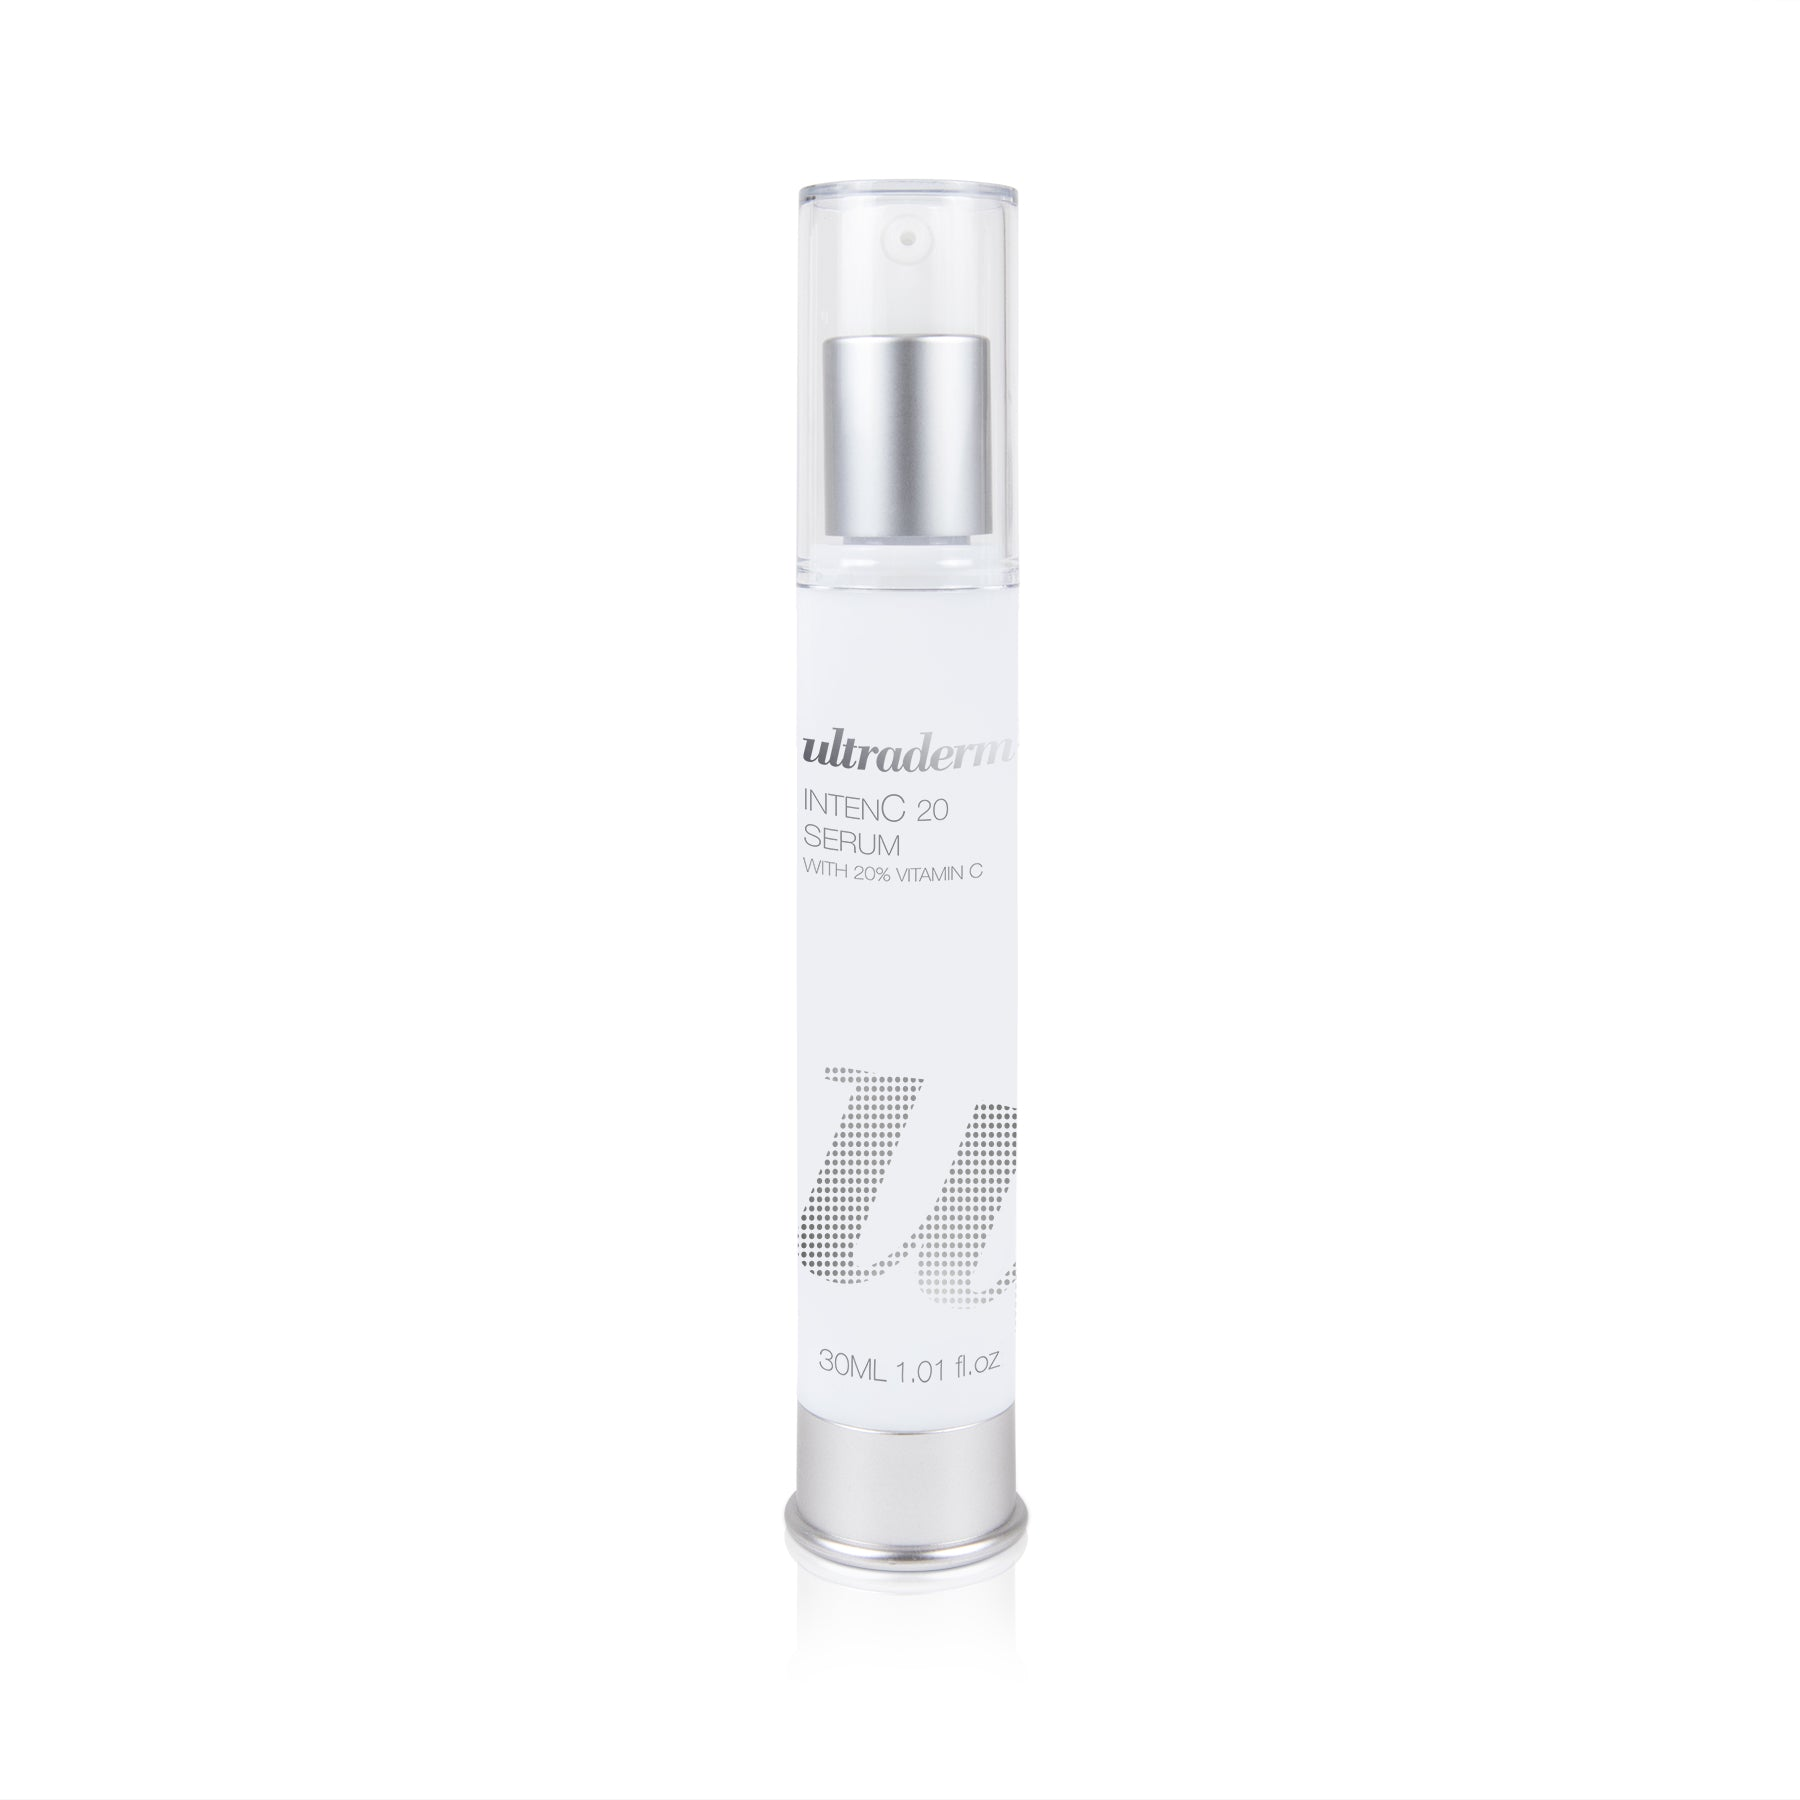 Ultraderm IntenC 20 Serum, Concentrated Vitamin C 20% Brightening Serum